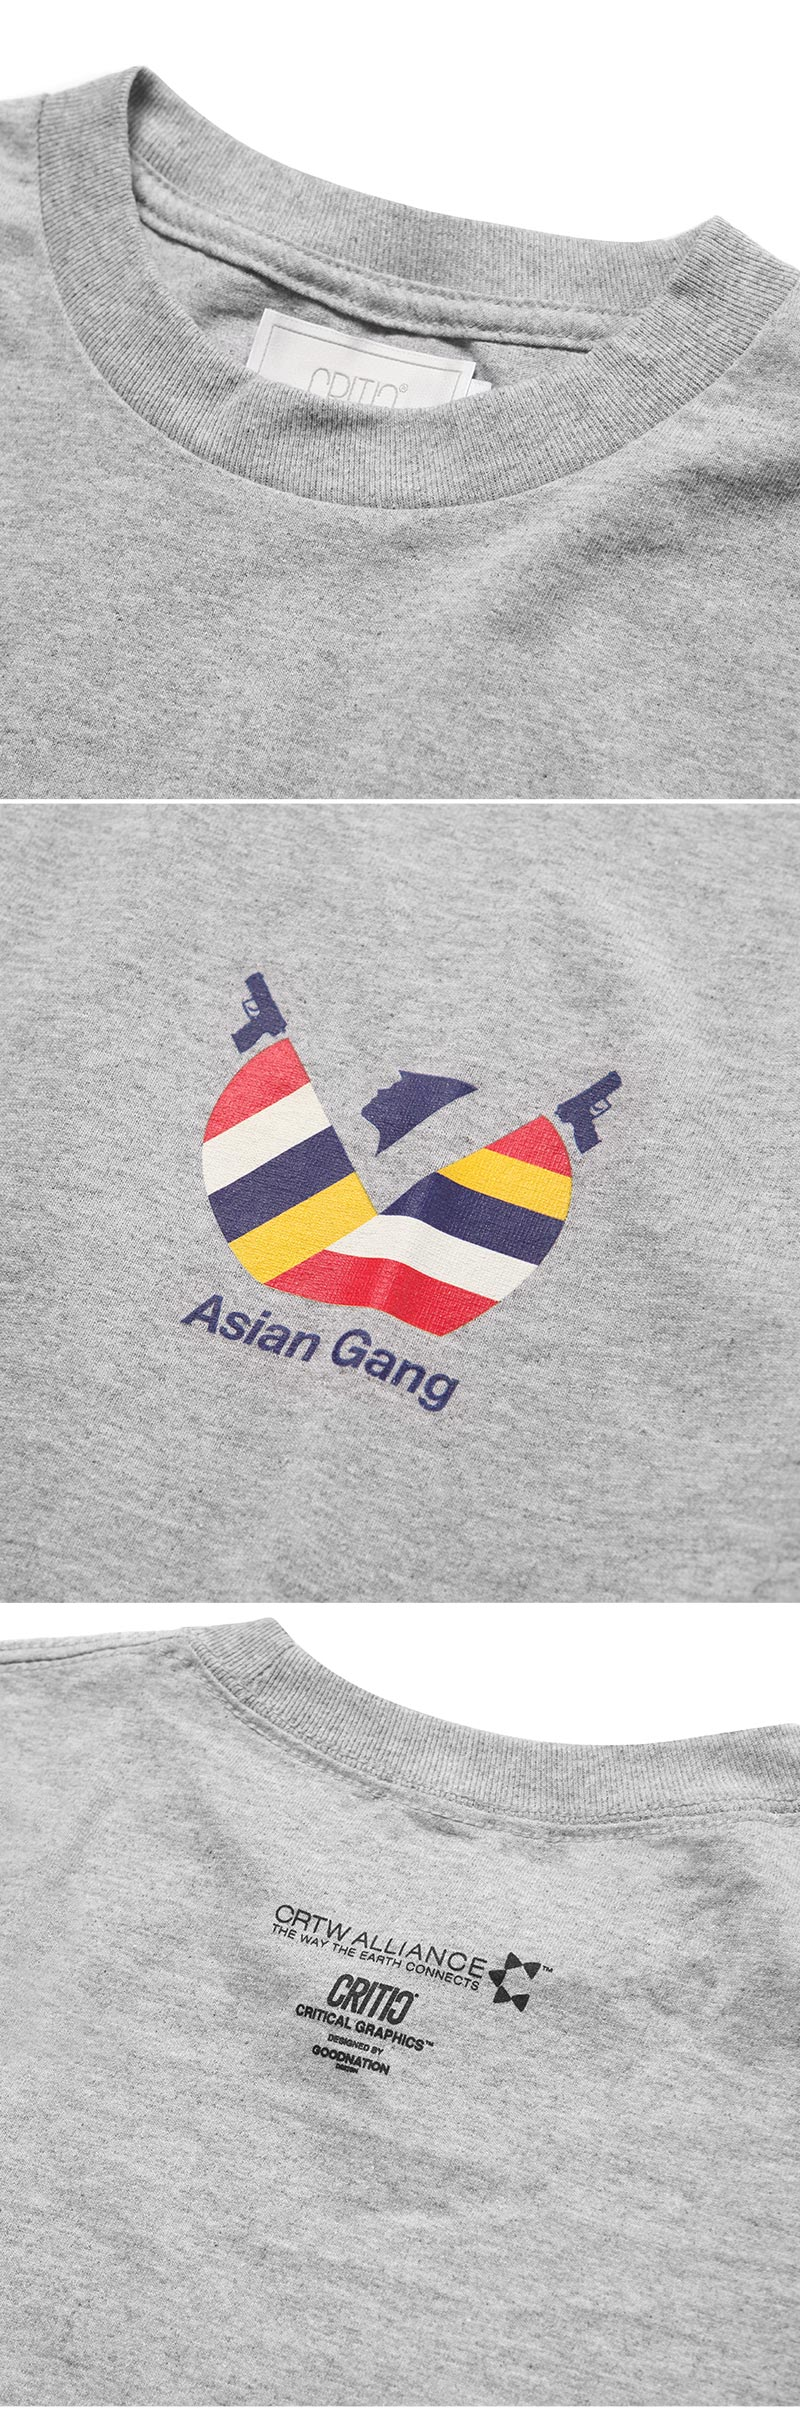 크리틱(CRITIC) ASIAN GANG T-SHIRT(GRAY)_CTOGURS41UC4